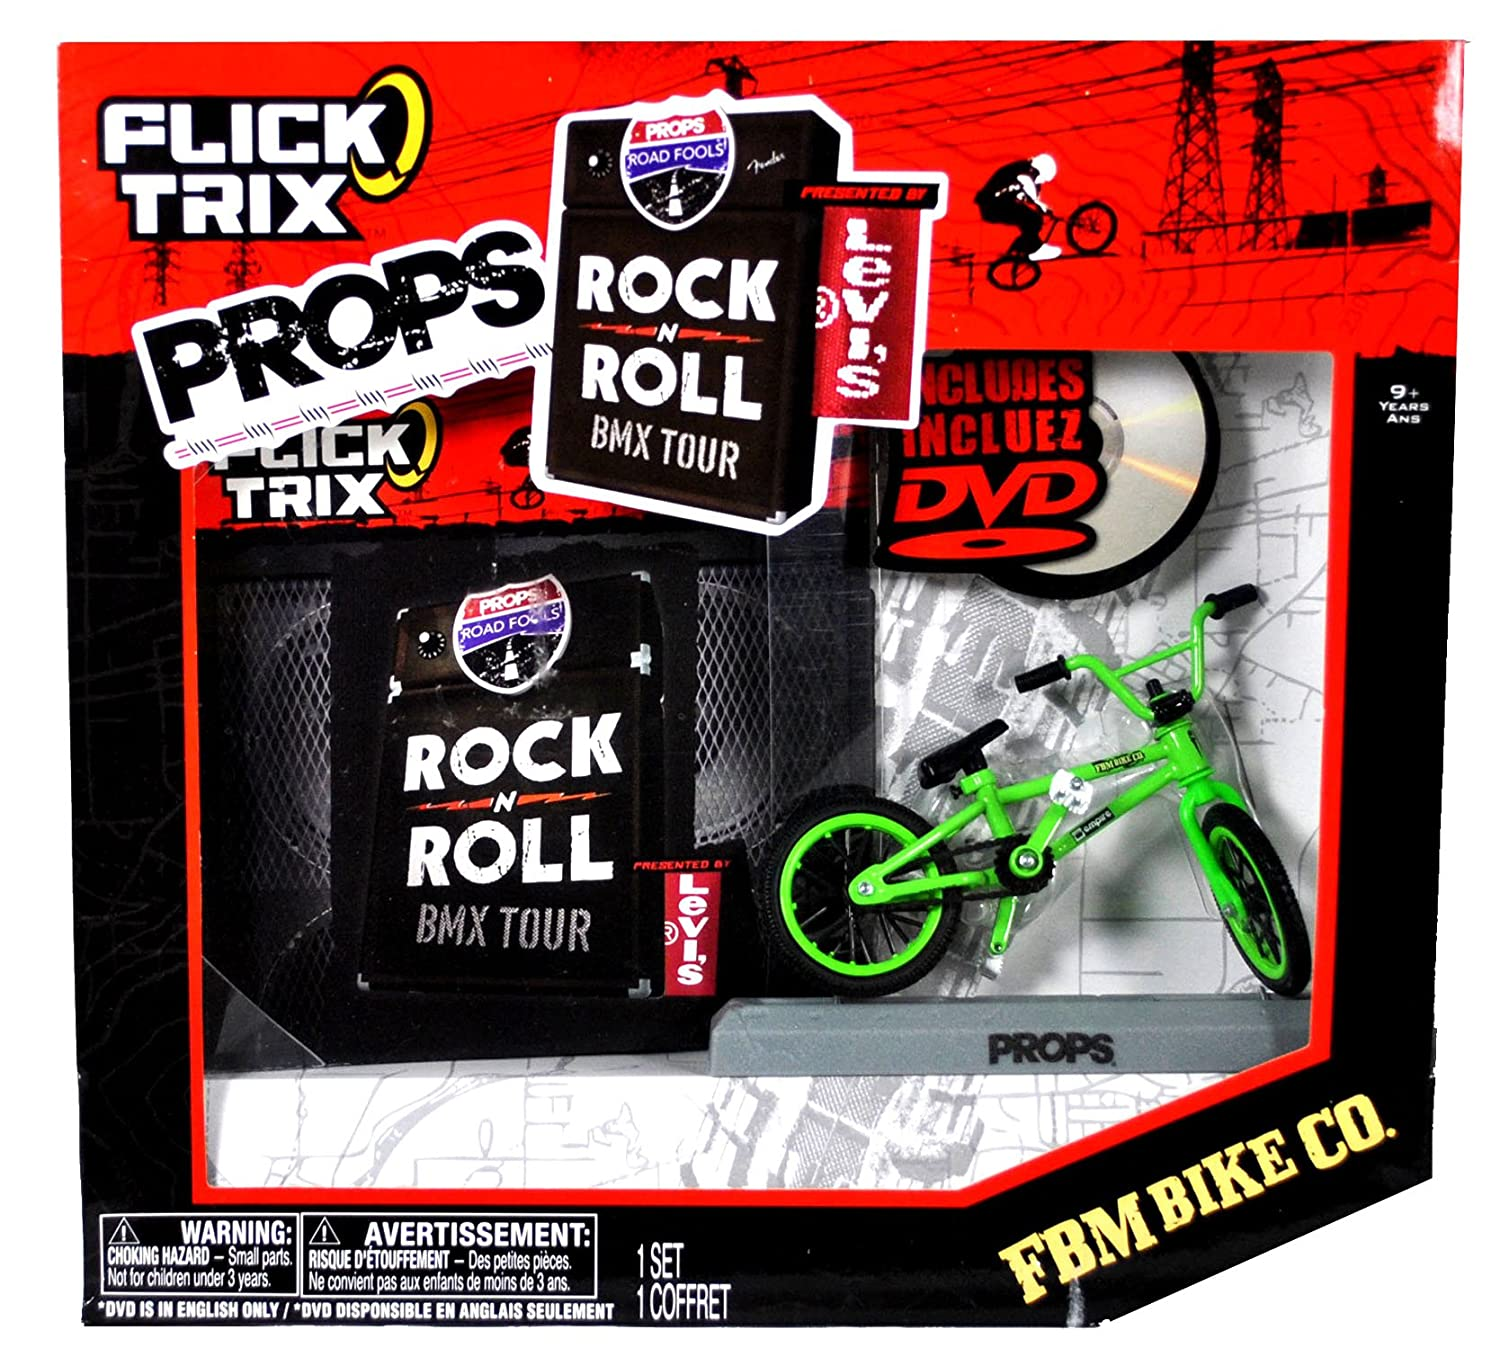 Flick Trix Props Rock N Roll BMX Tour [FBM Bike Co.] Spin Master 20031807